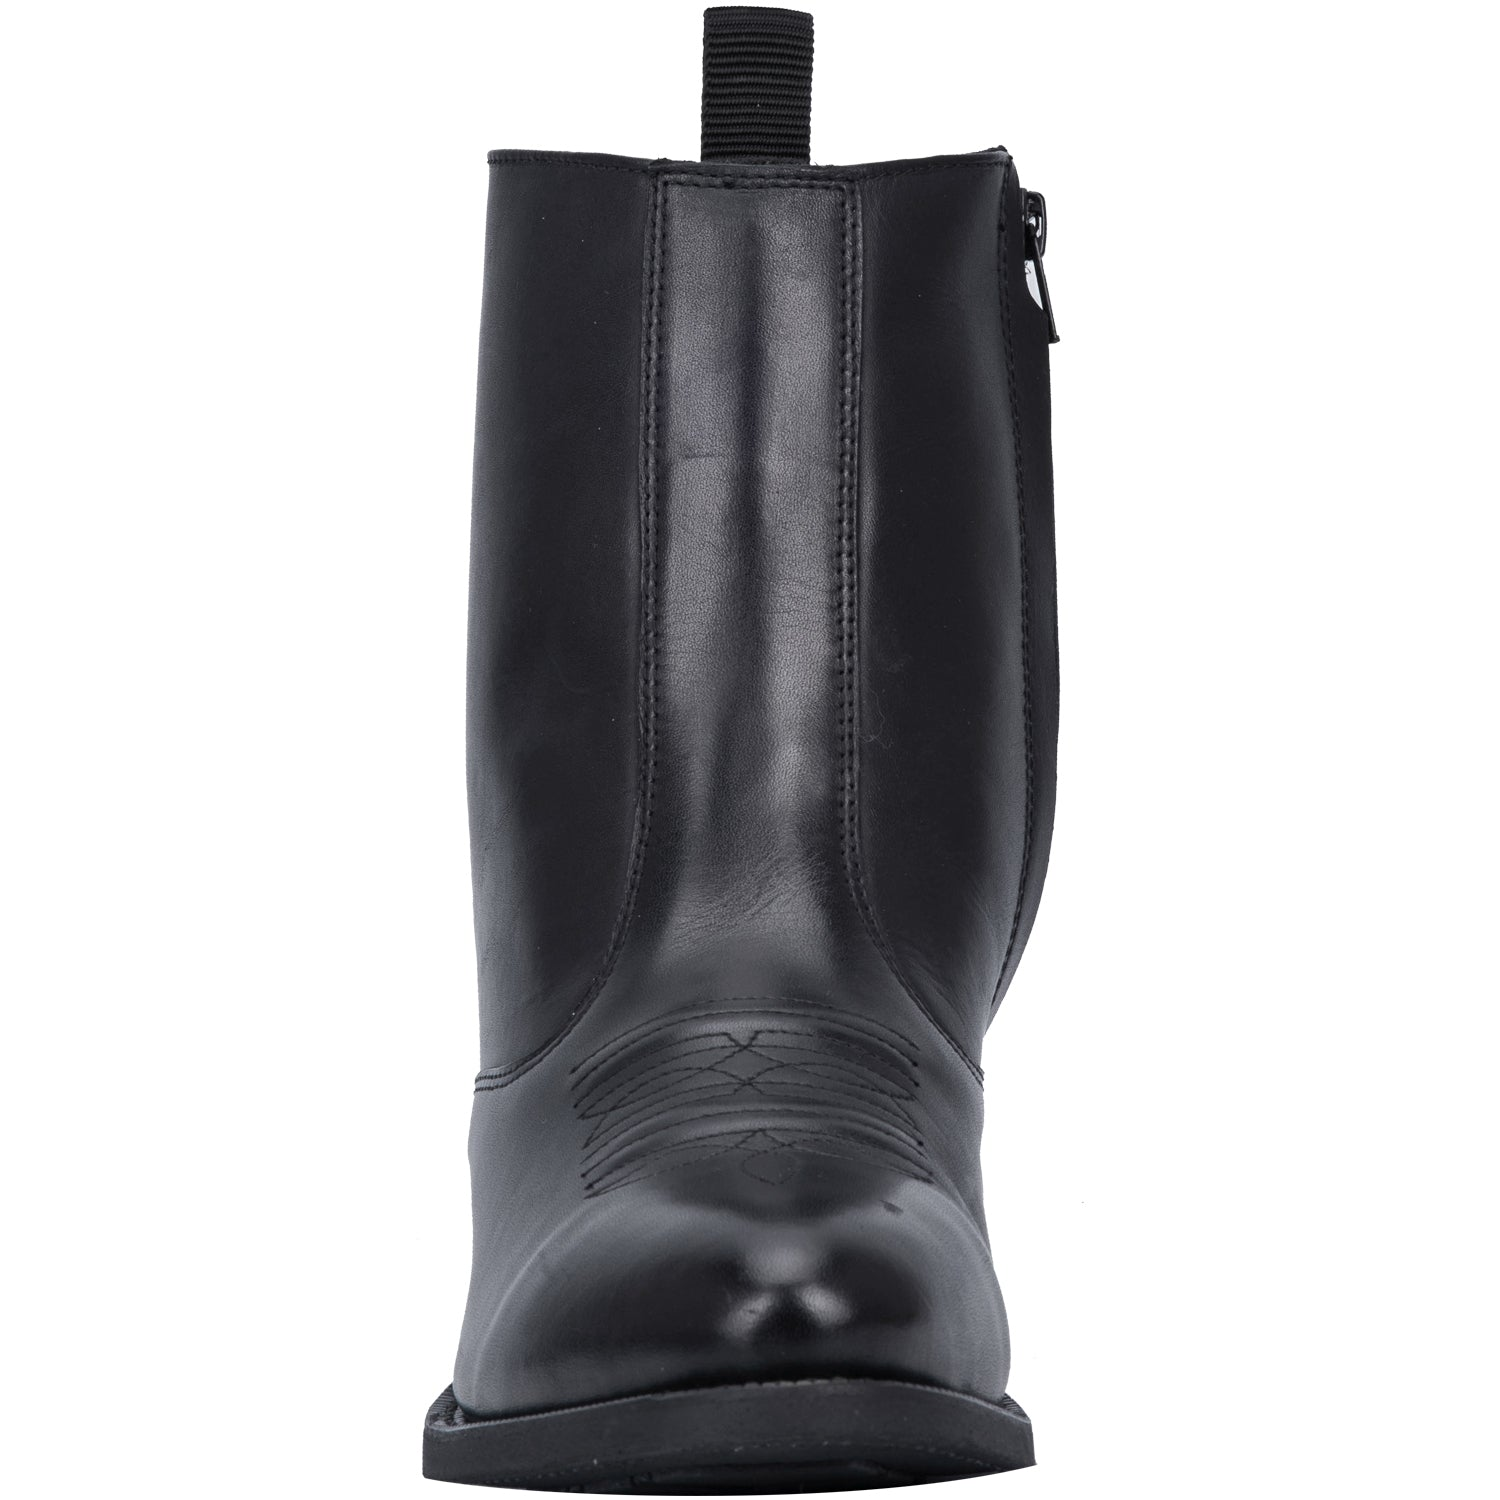 FLETCHER LEATHER BOOT 5789471735850